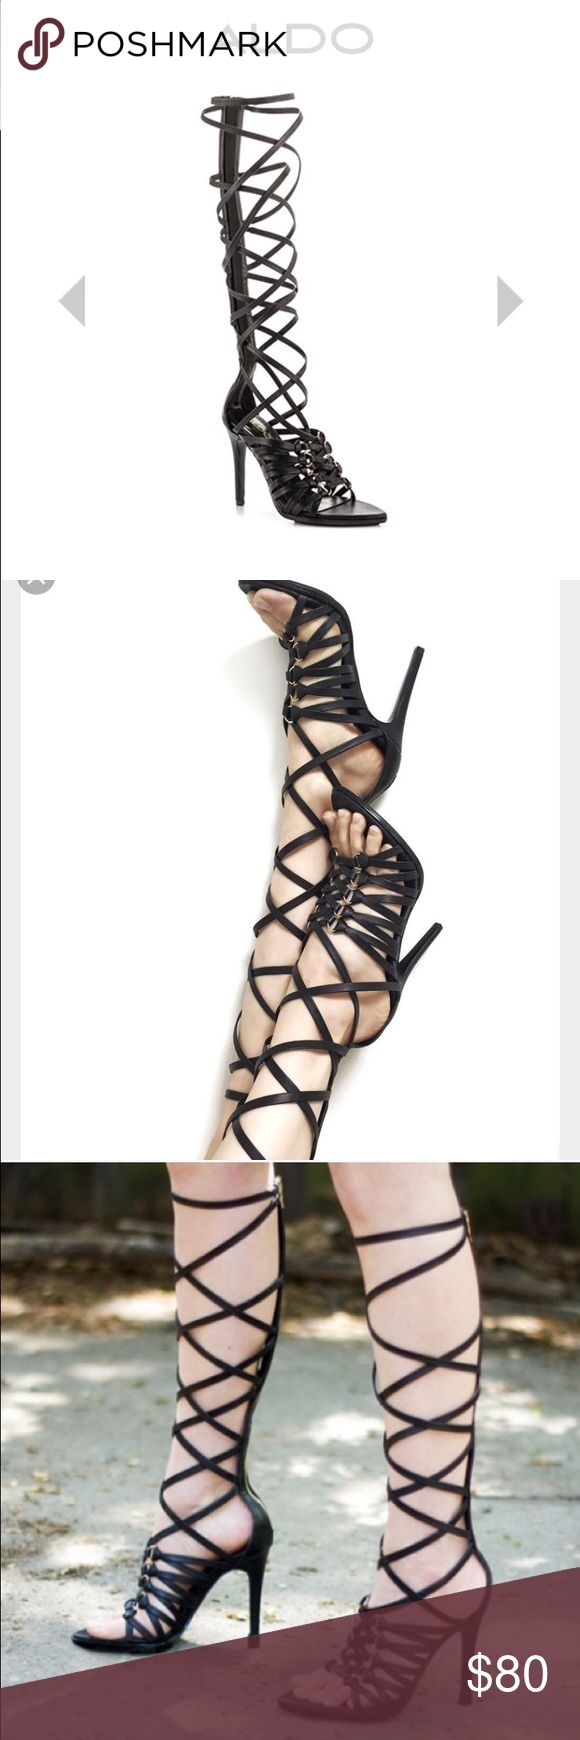 ALDO Ponente Black Leather Strap Up Heel Very stylish, brand new never worn strap up heels! Listed cheaper on Ⓜ️ feel free to ask questions Aldo Shoes Heels